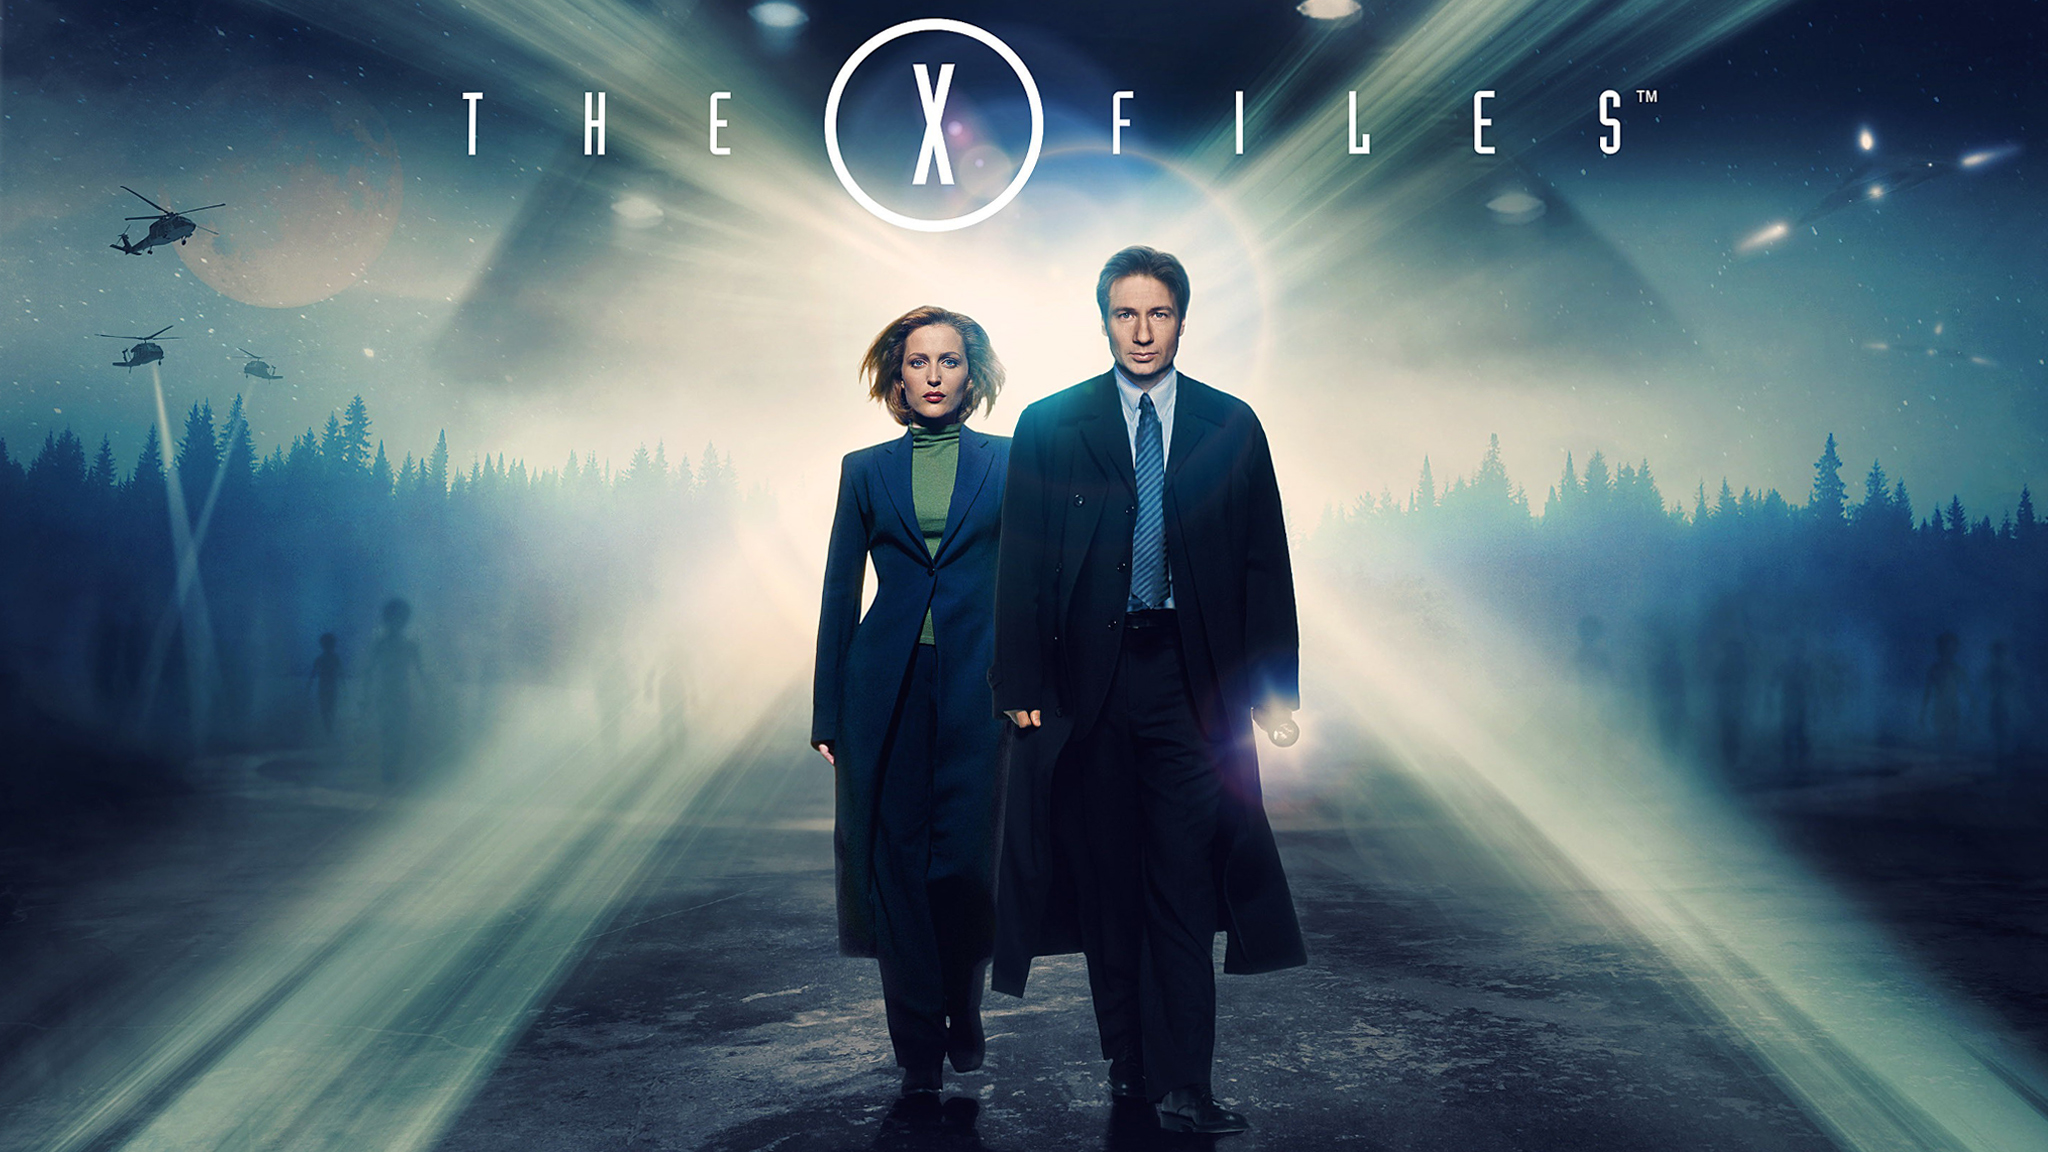 Fox Orders 10 Episode Event For The X Files